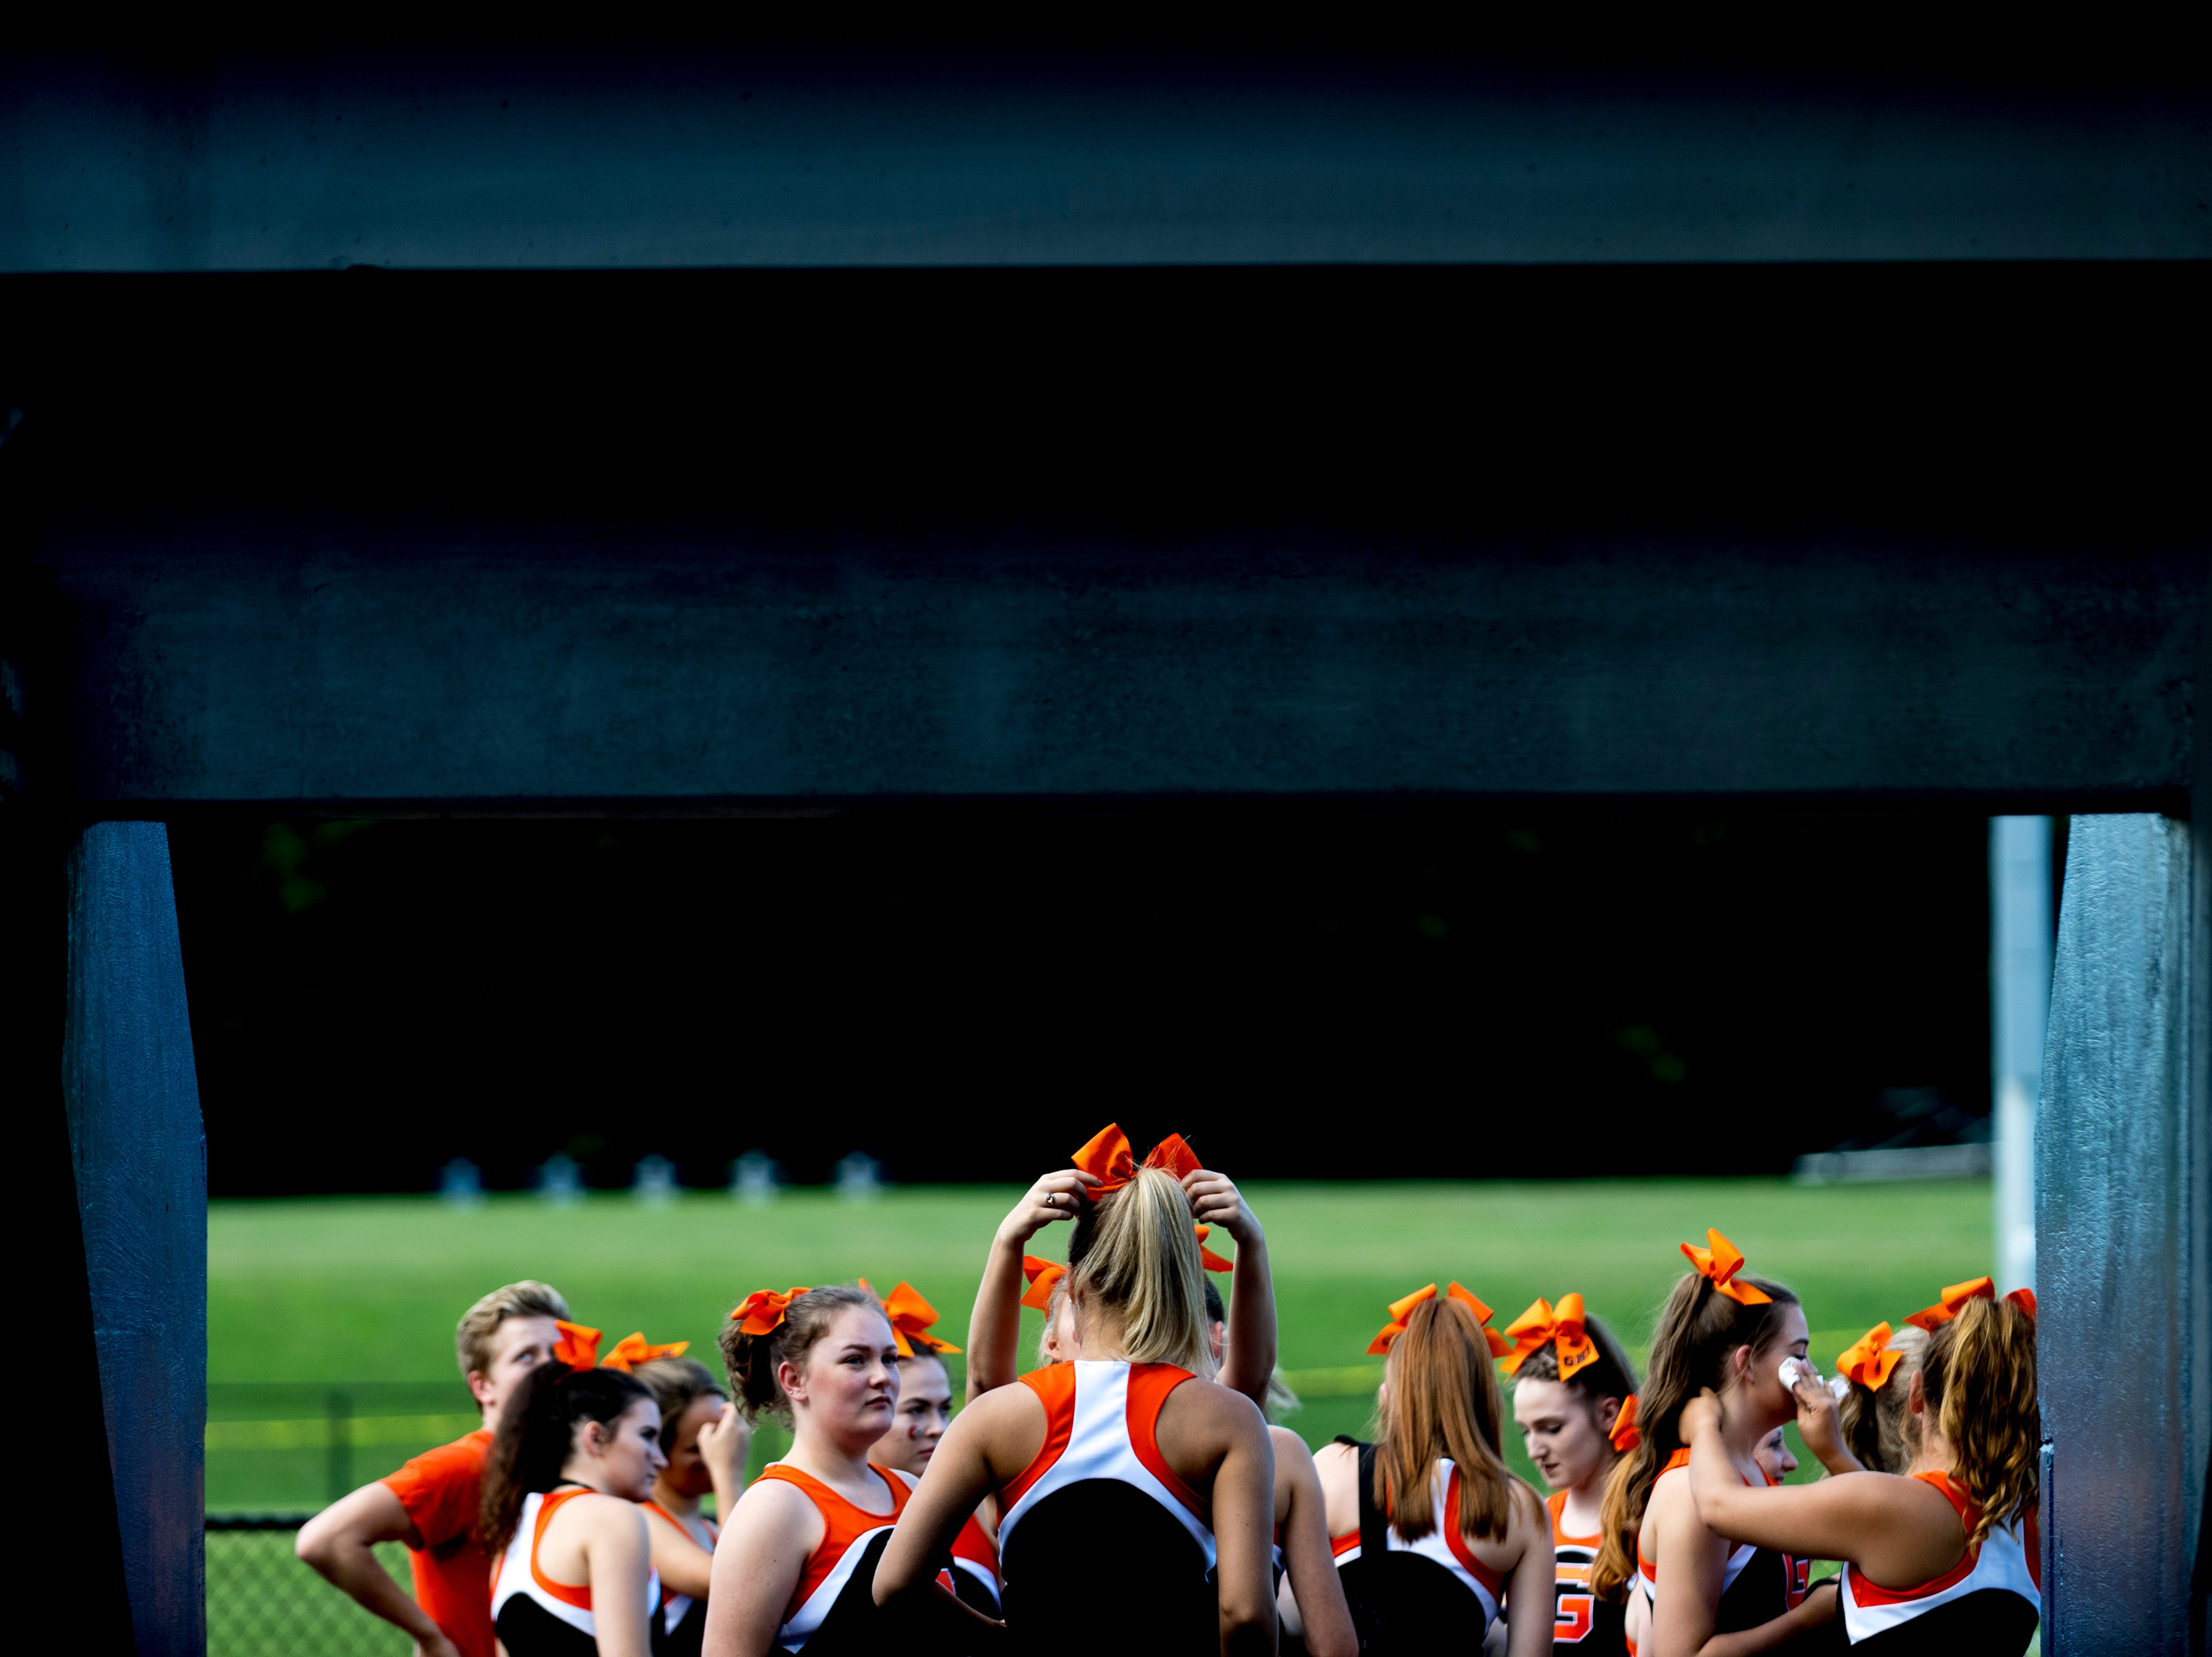 Greenback cheerleaders get ready during the Blount County football jamboree at William Blount High School in Maryville, Tennessee on Friday, August 10, 2018.